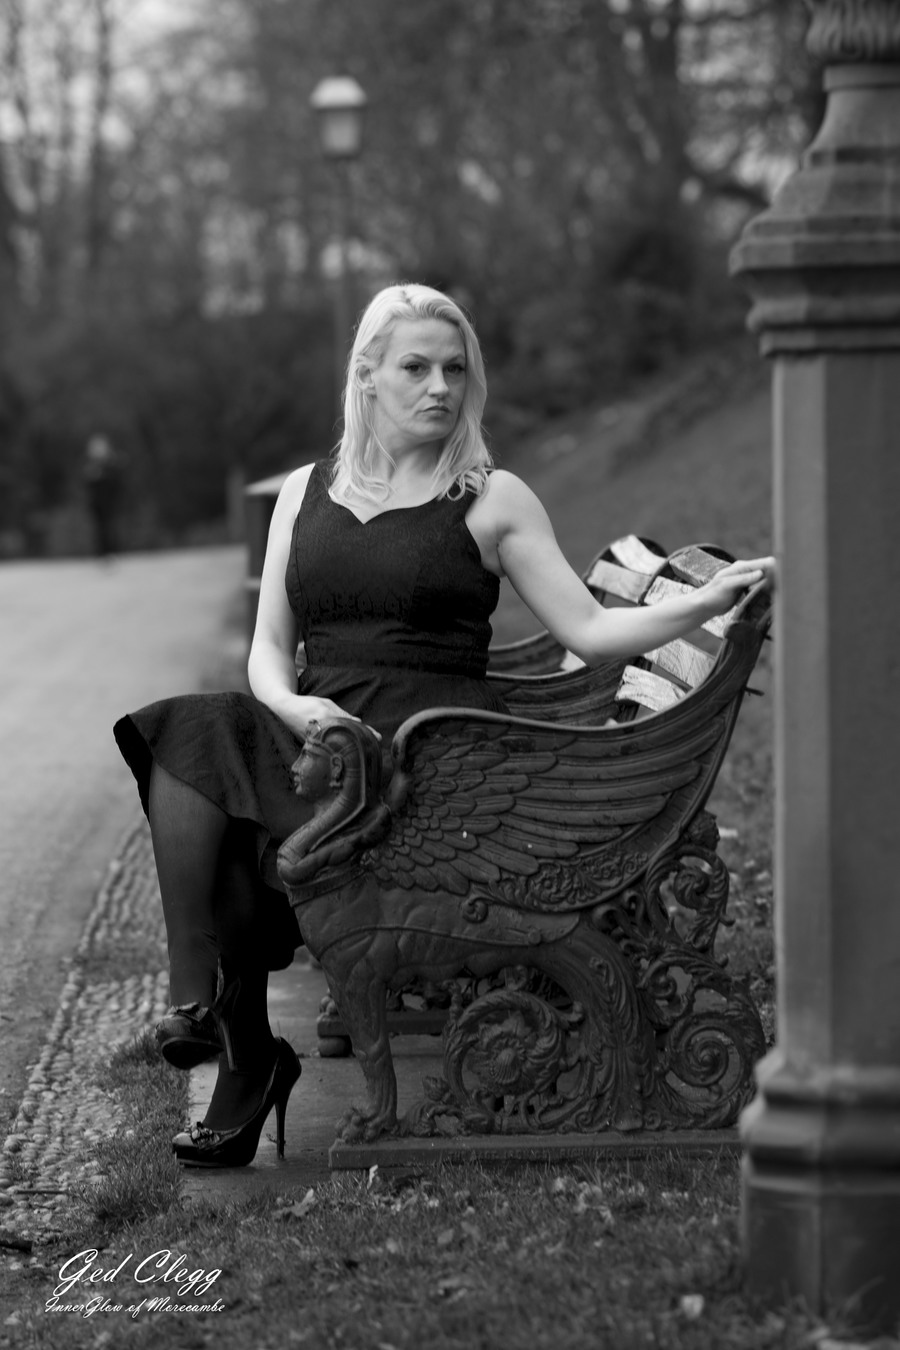 Bench / Photography by InnerGlow Photography Morecambe, Model tinkerbelle75, Post processing by InnerGlow Photography Morecambe / Uploaded 29th December 2018 @ 06:10 PM